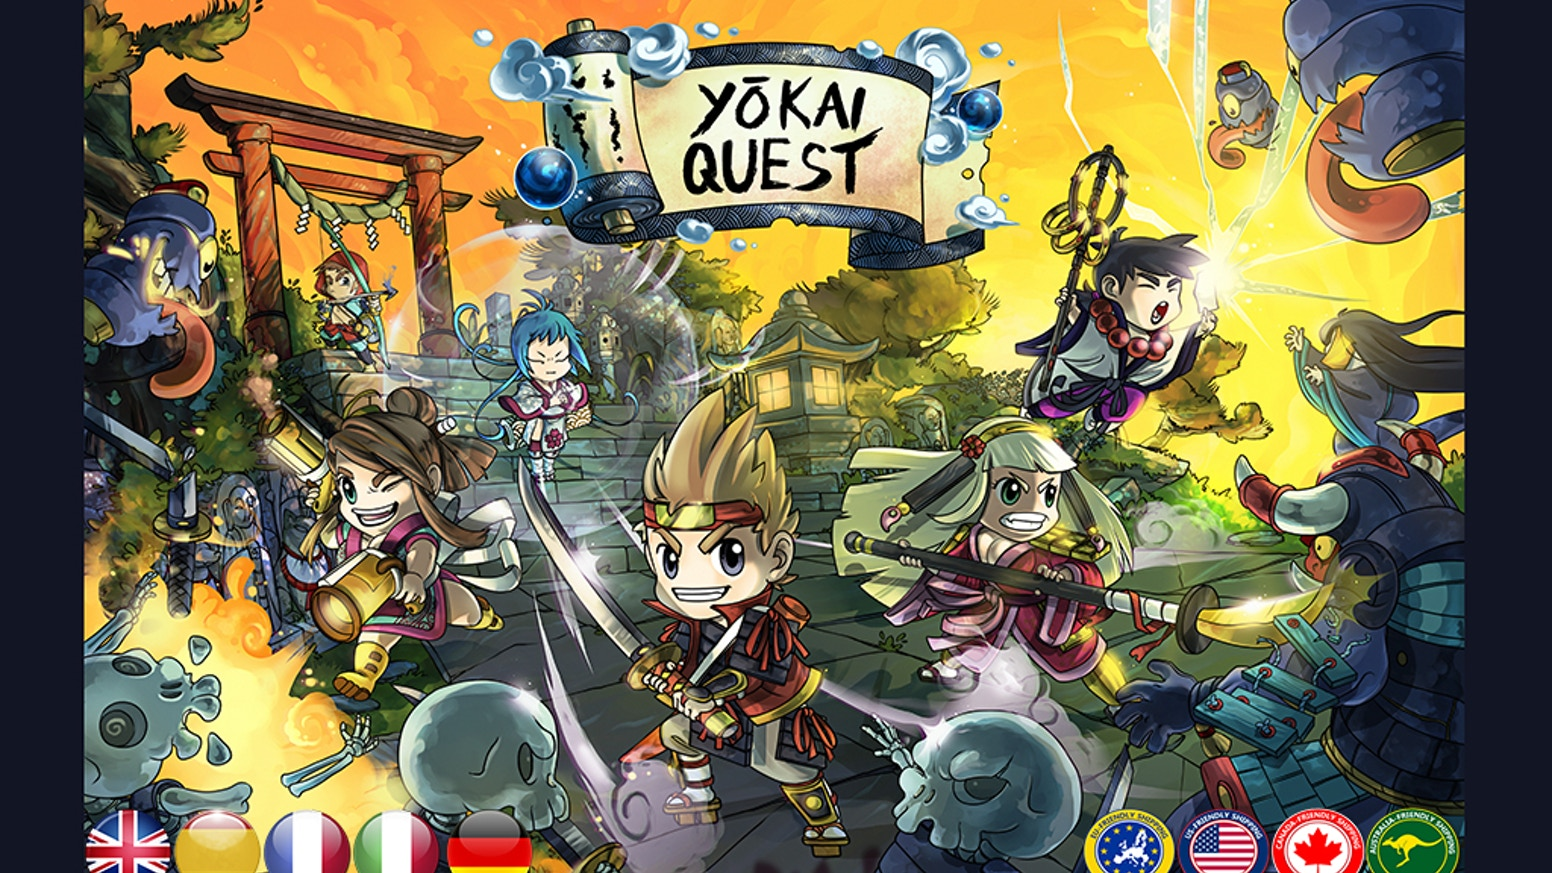 Yōkai Quest is a collaborative game for 1 or more players, set in a fantasy, Japan-inspired world with a chibi look.